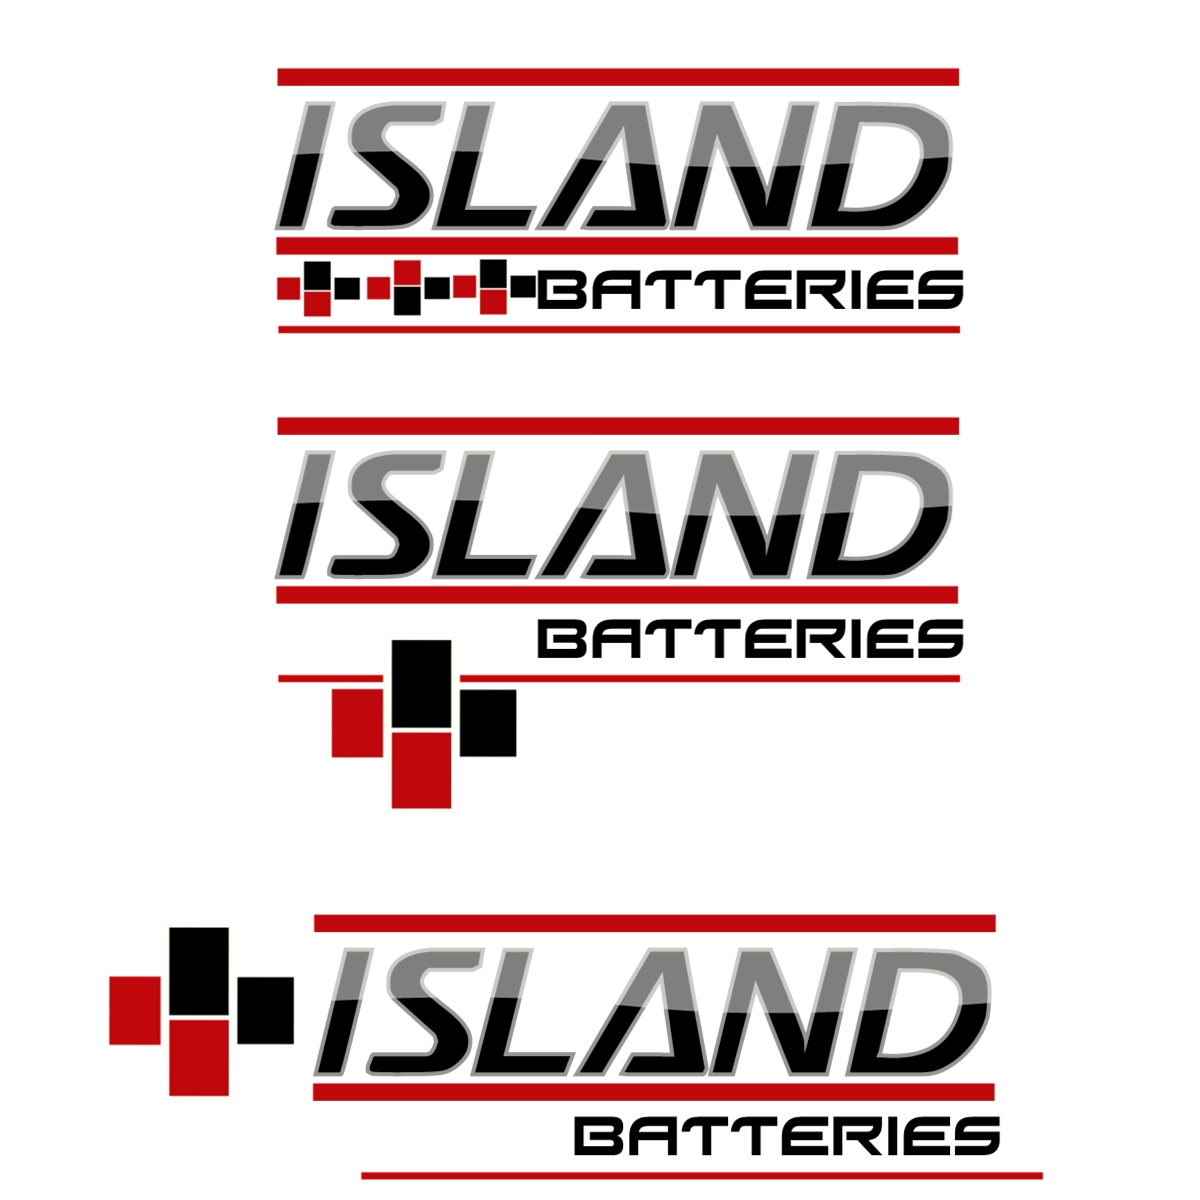 Logo Design by Joseph calunsag Cagaanan - Entry No. 17 in the Logo Design Contest Fun Logo Design for Island Batteries.